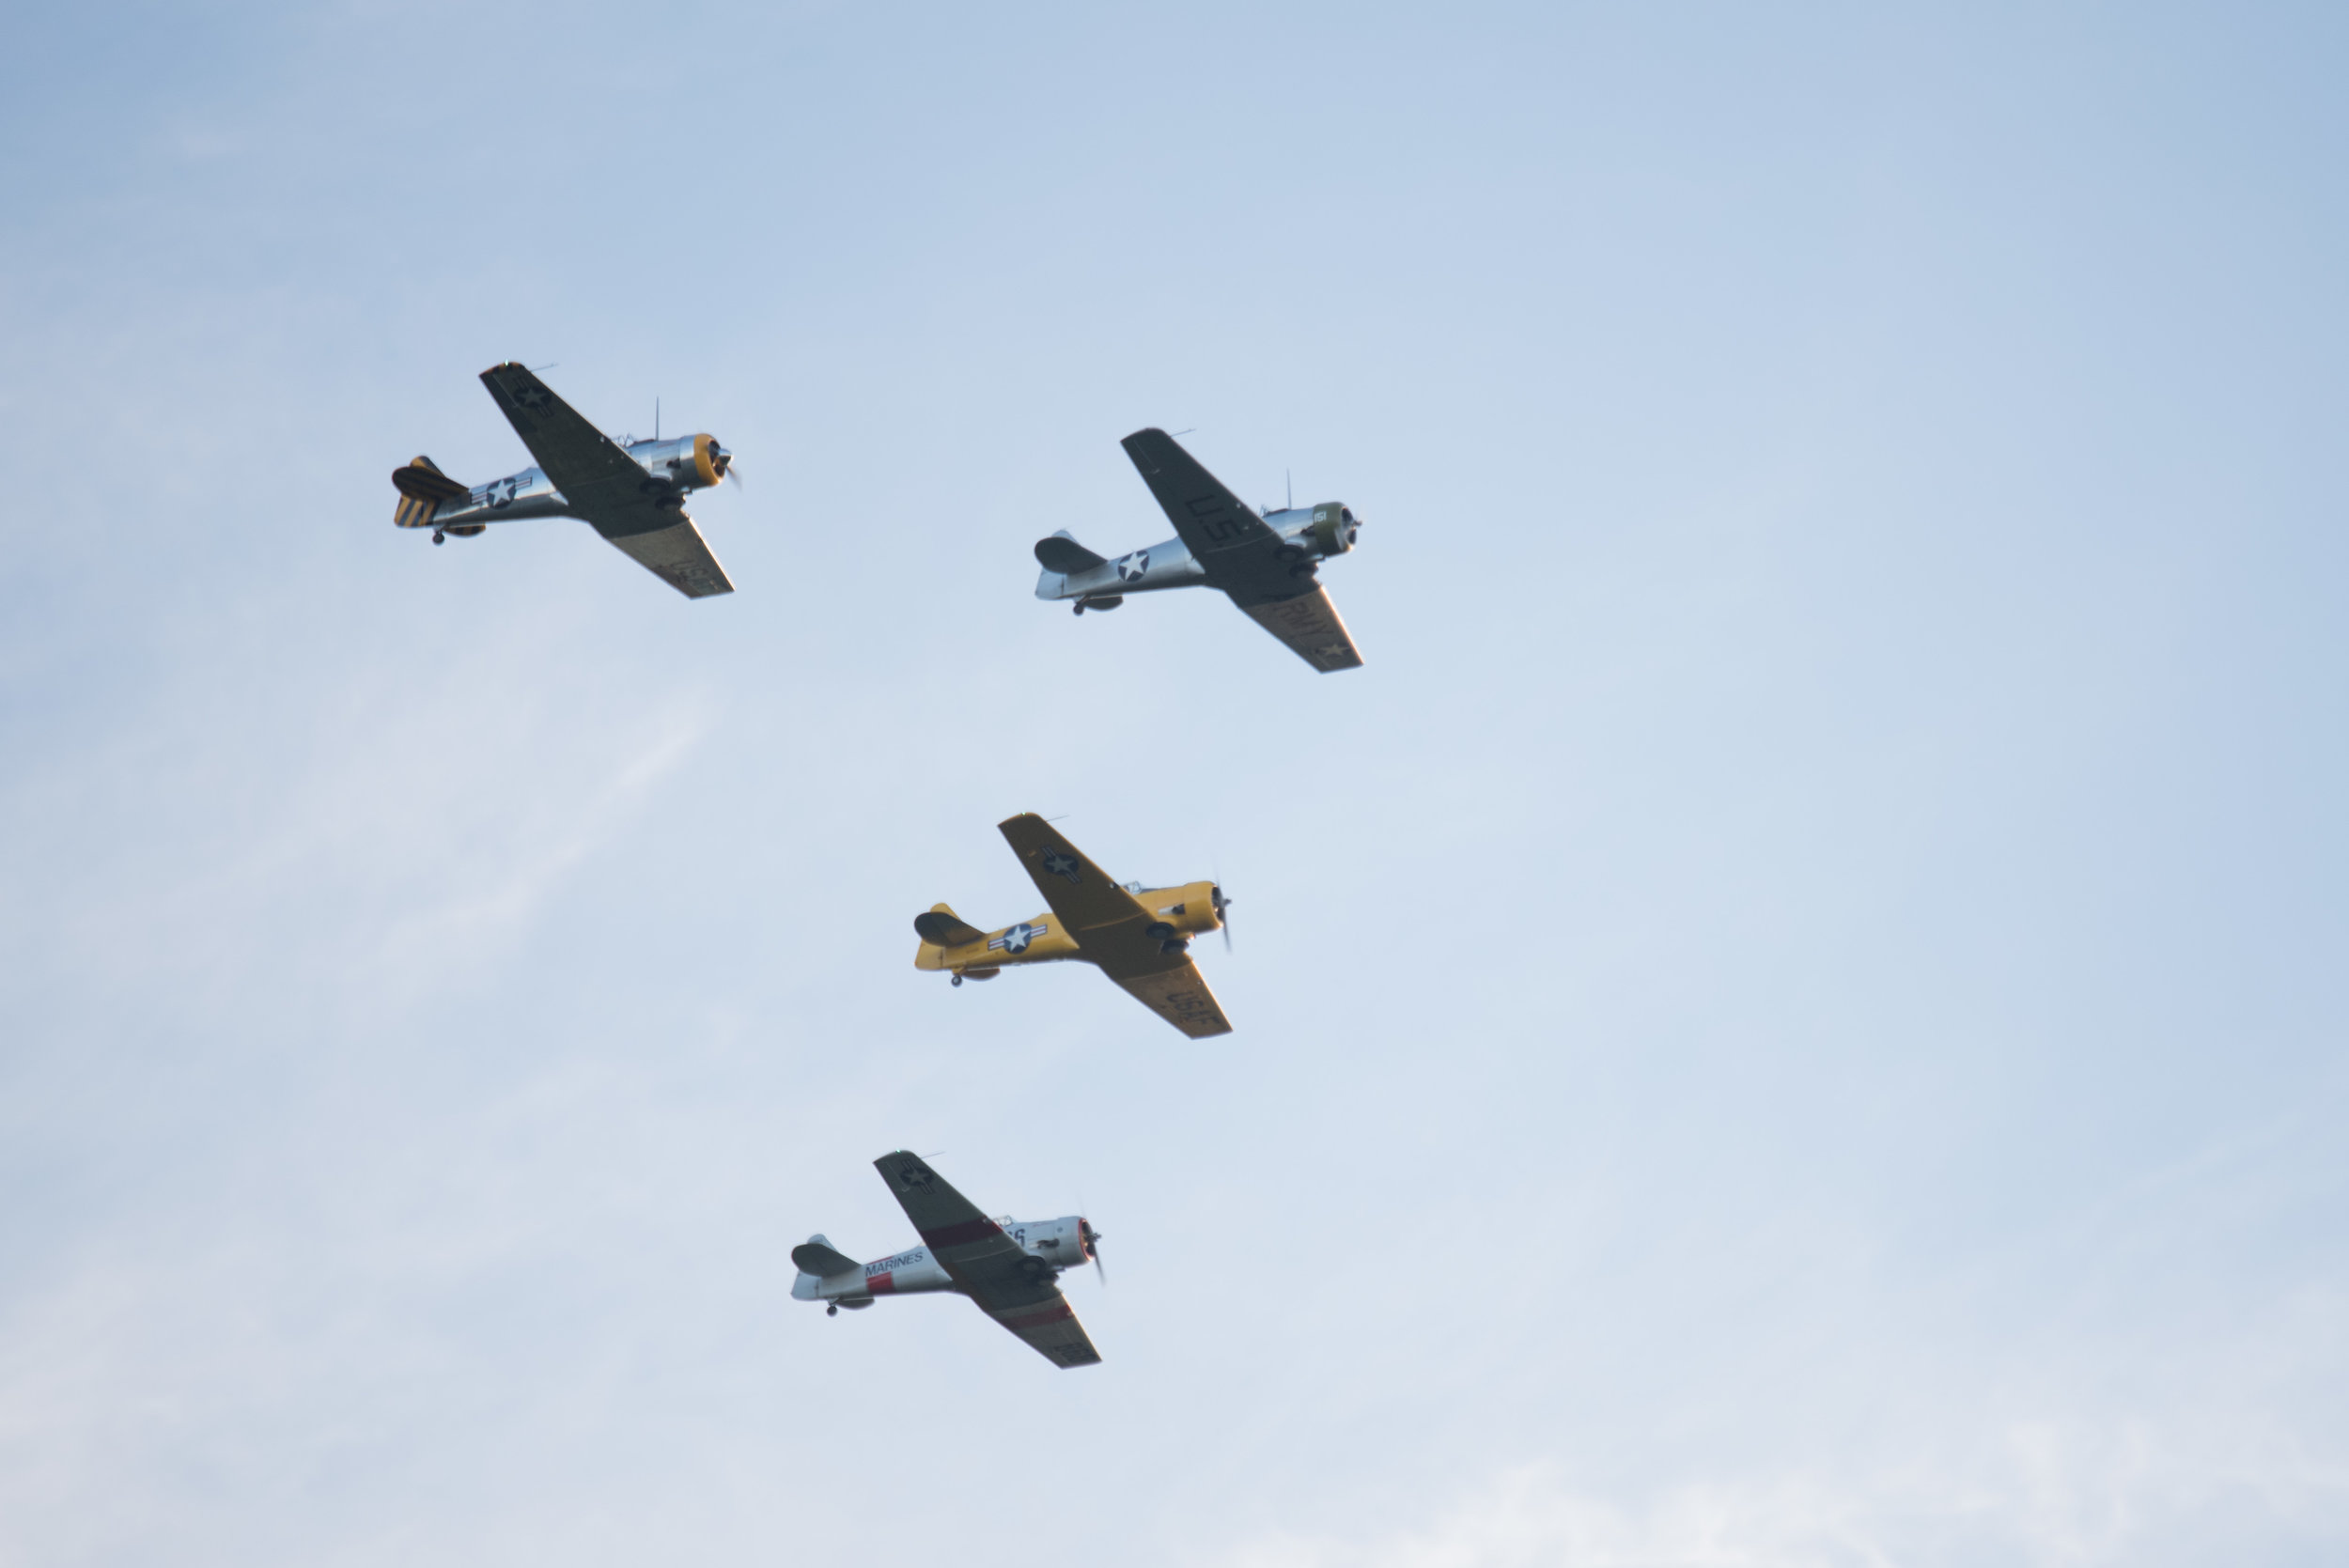 EQUEST-5227 - WWII T-6 Texan fly-over, Taylor Stevenson, Lanny Parcell, Carl Best, Tom Martin.jpg